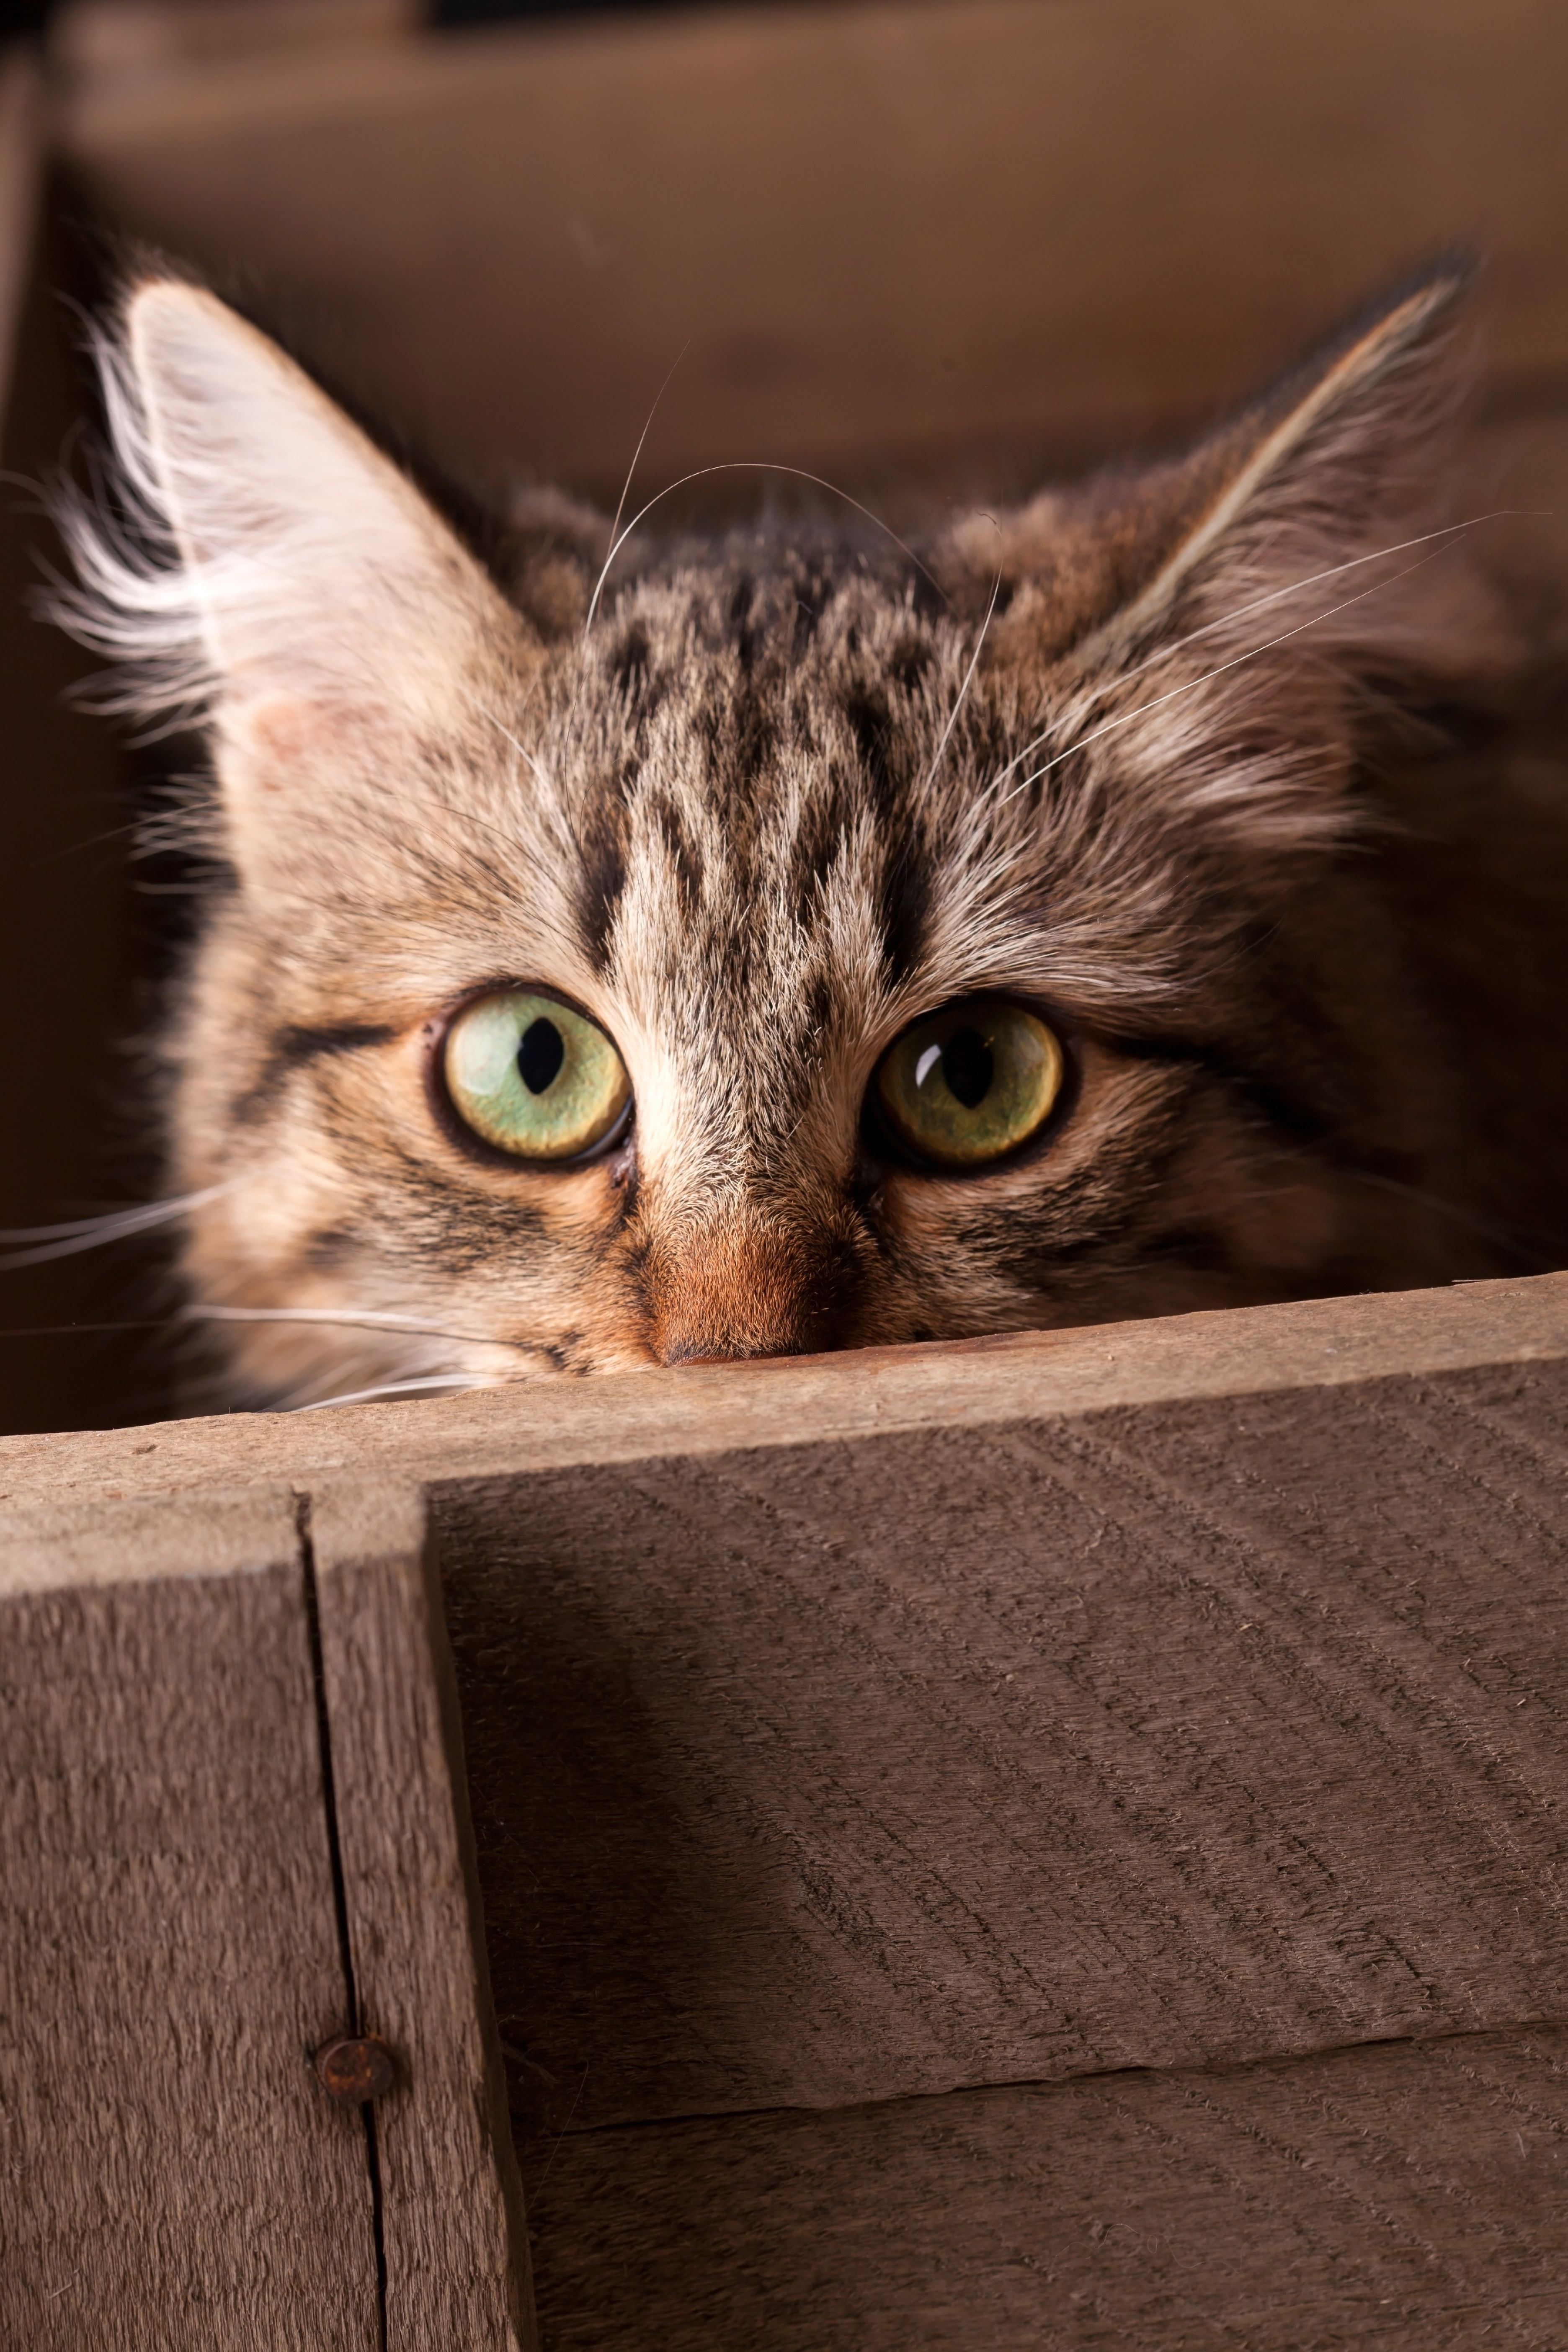 Why do cats get FIP? Know the signs & symptoms. Cat purr